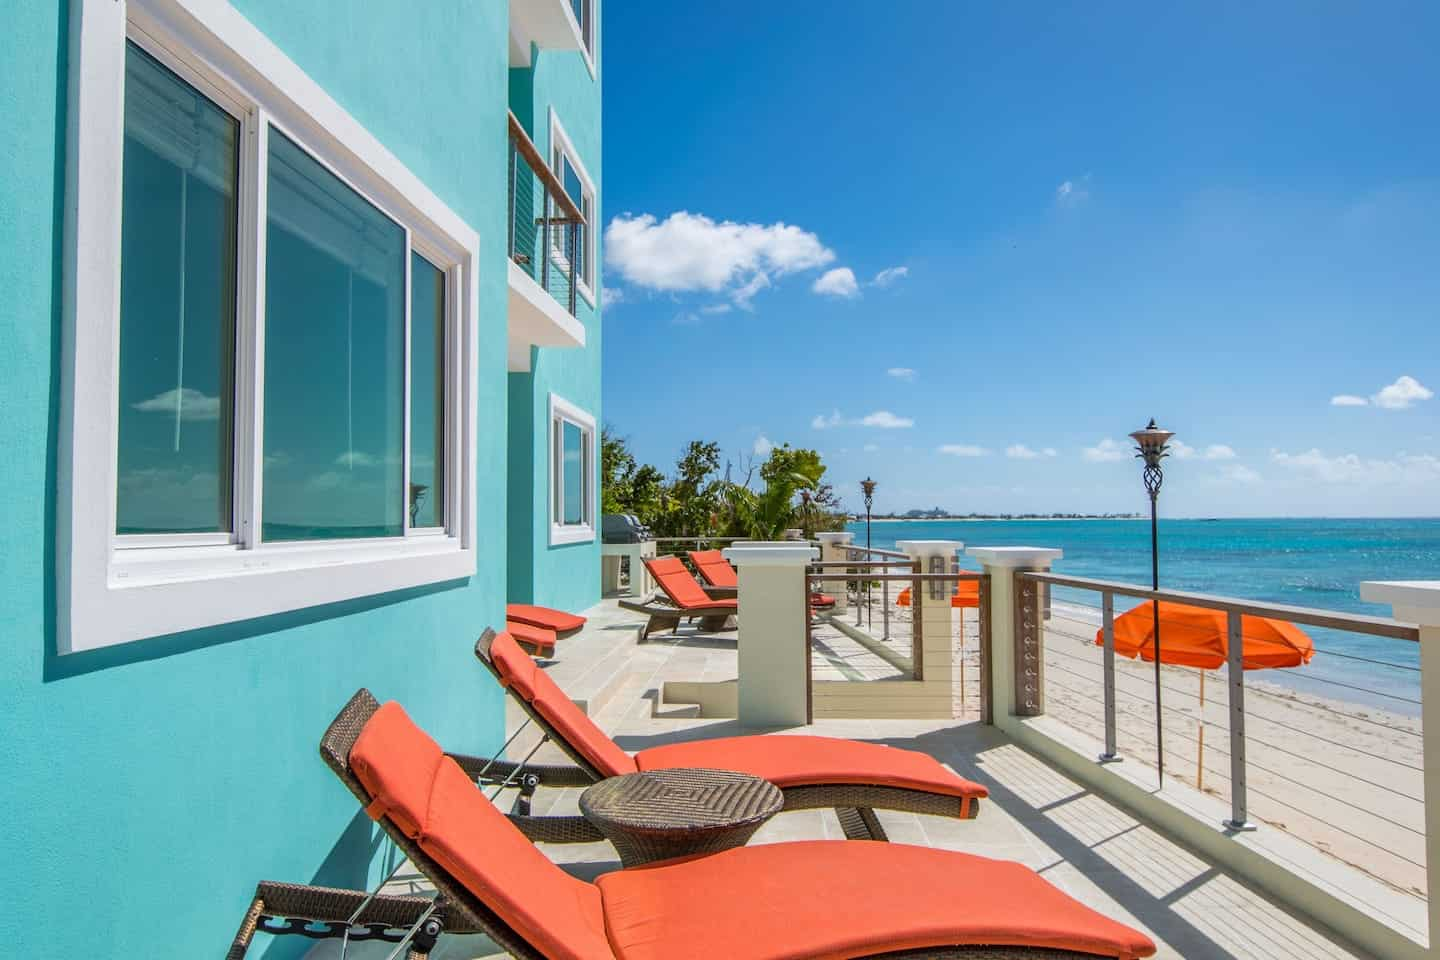 Image of Airbnb rental in Turks and Caicos Islands